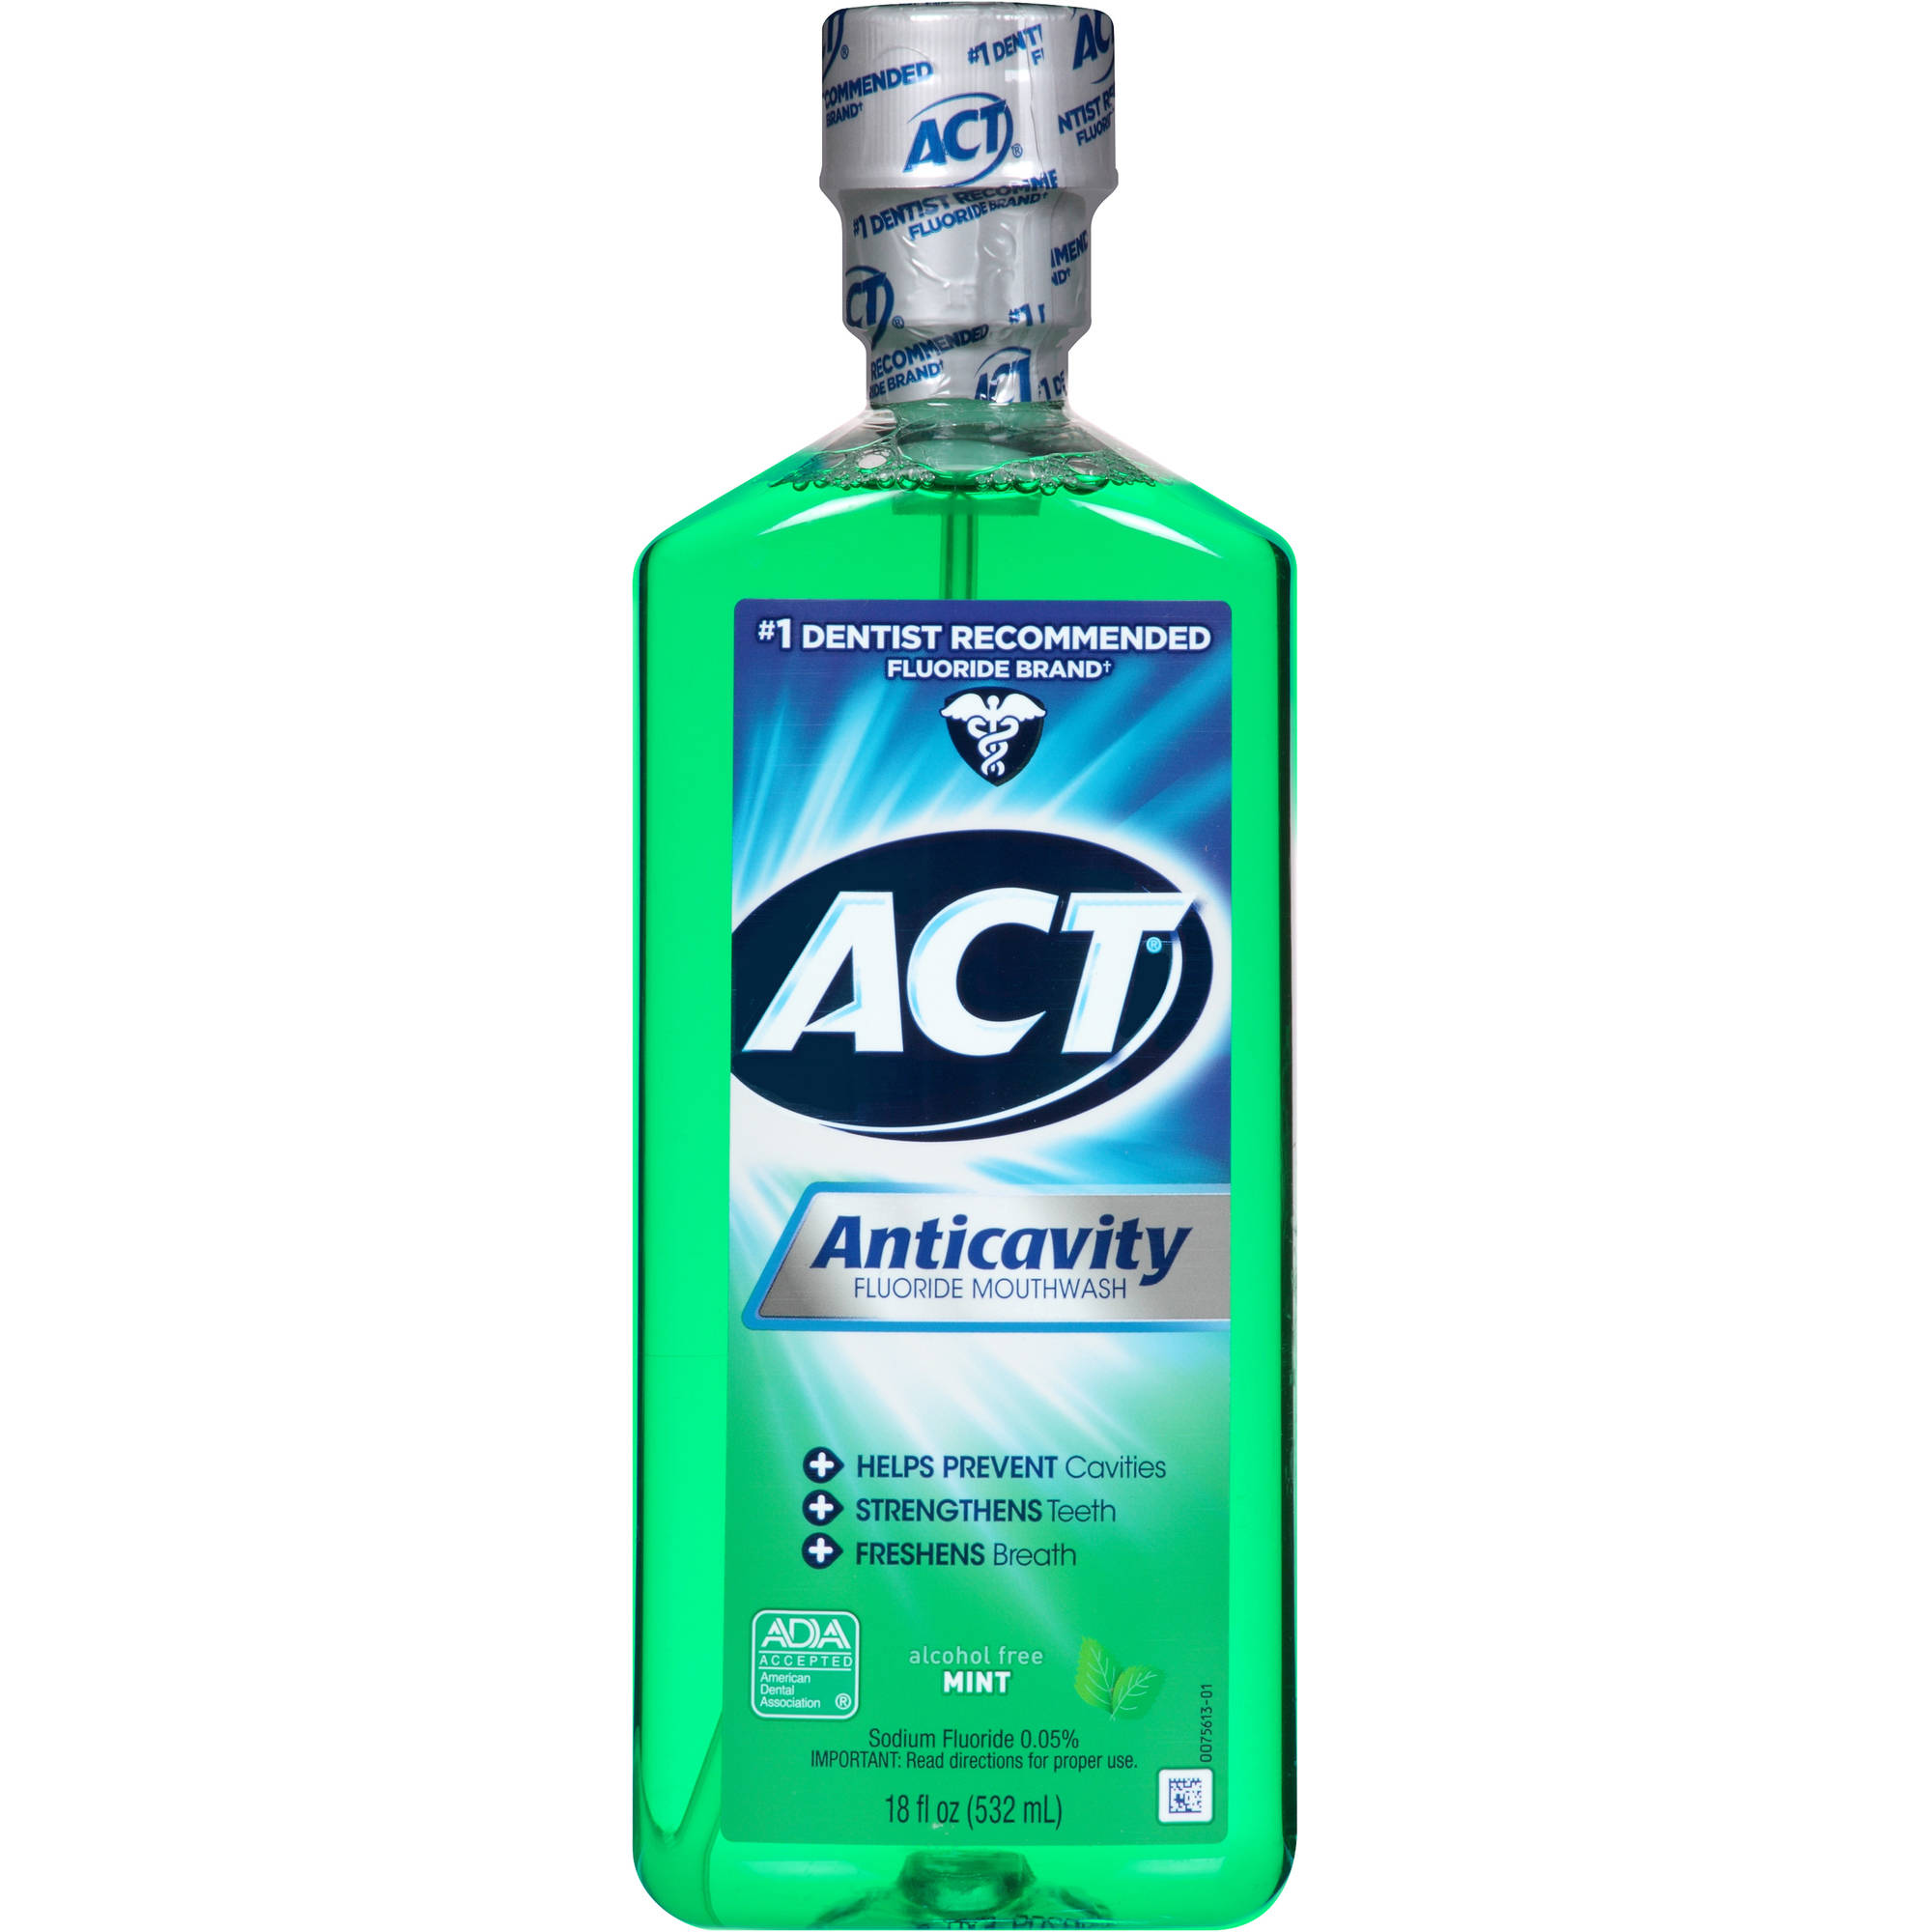 Act Fluoride Rinse Mint Anticavity, 18 fl oz